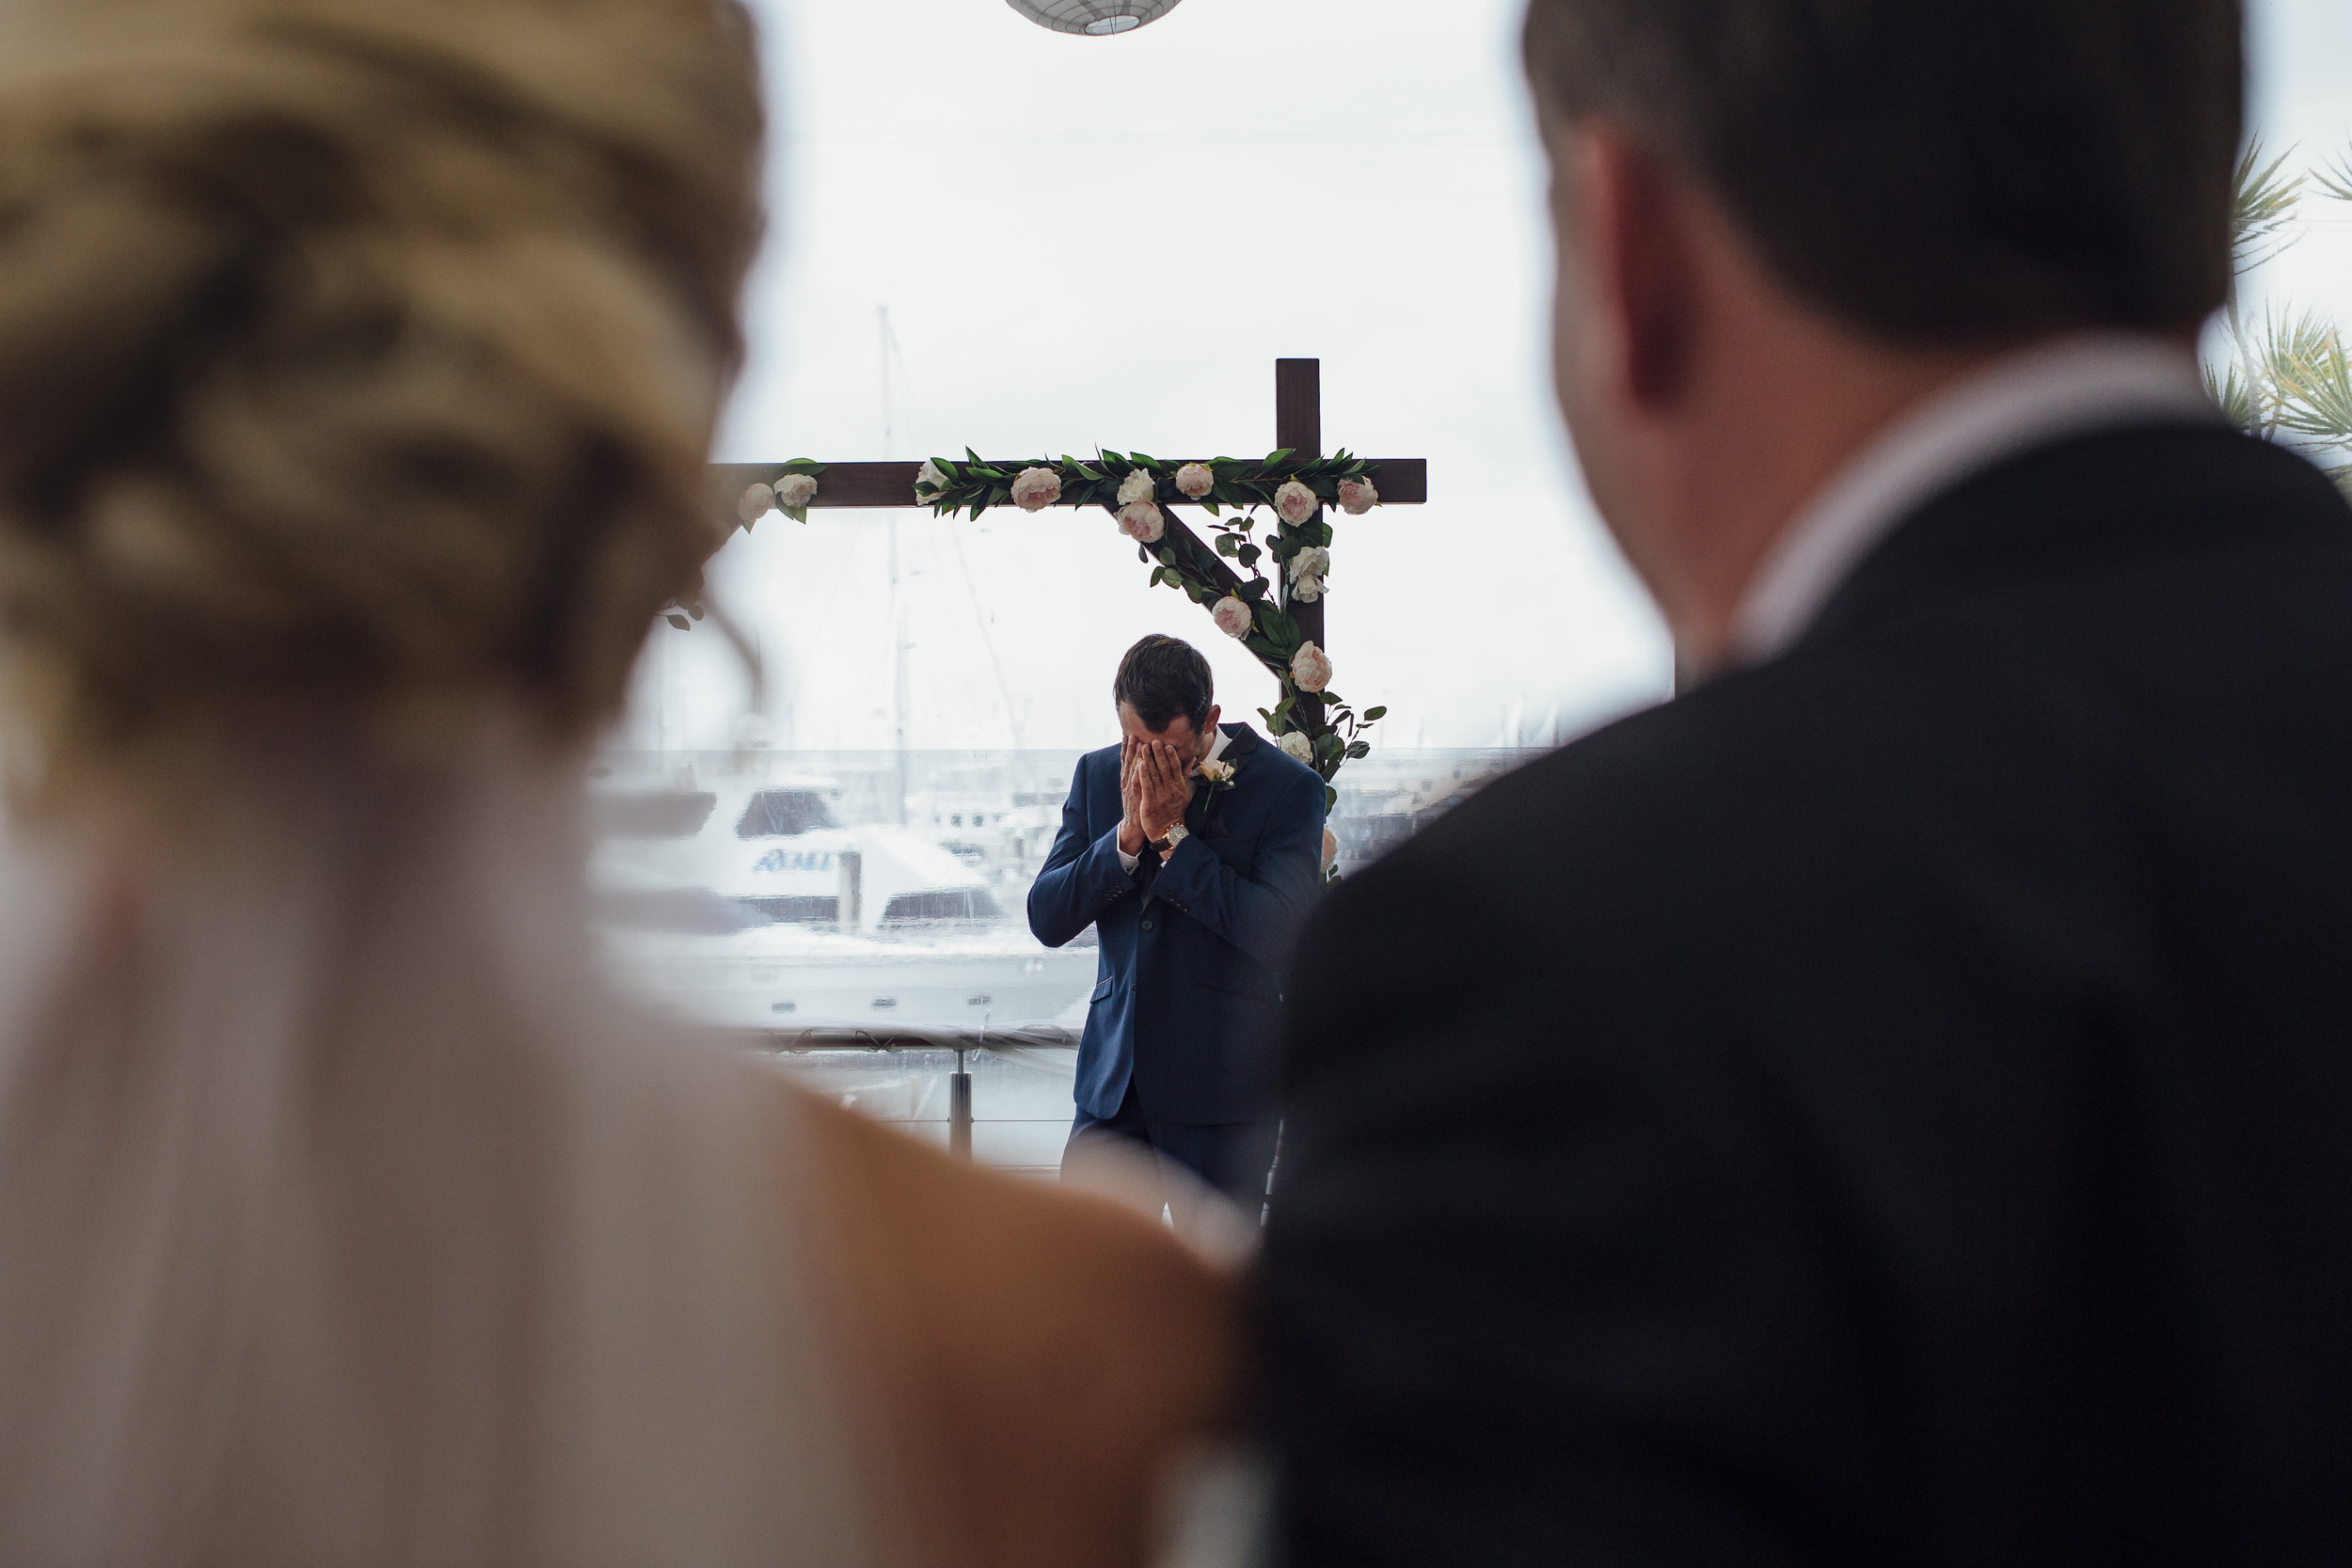 Emotional groom videography captured